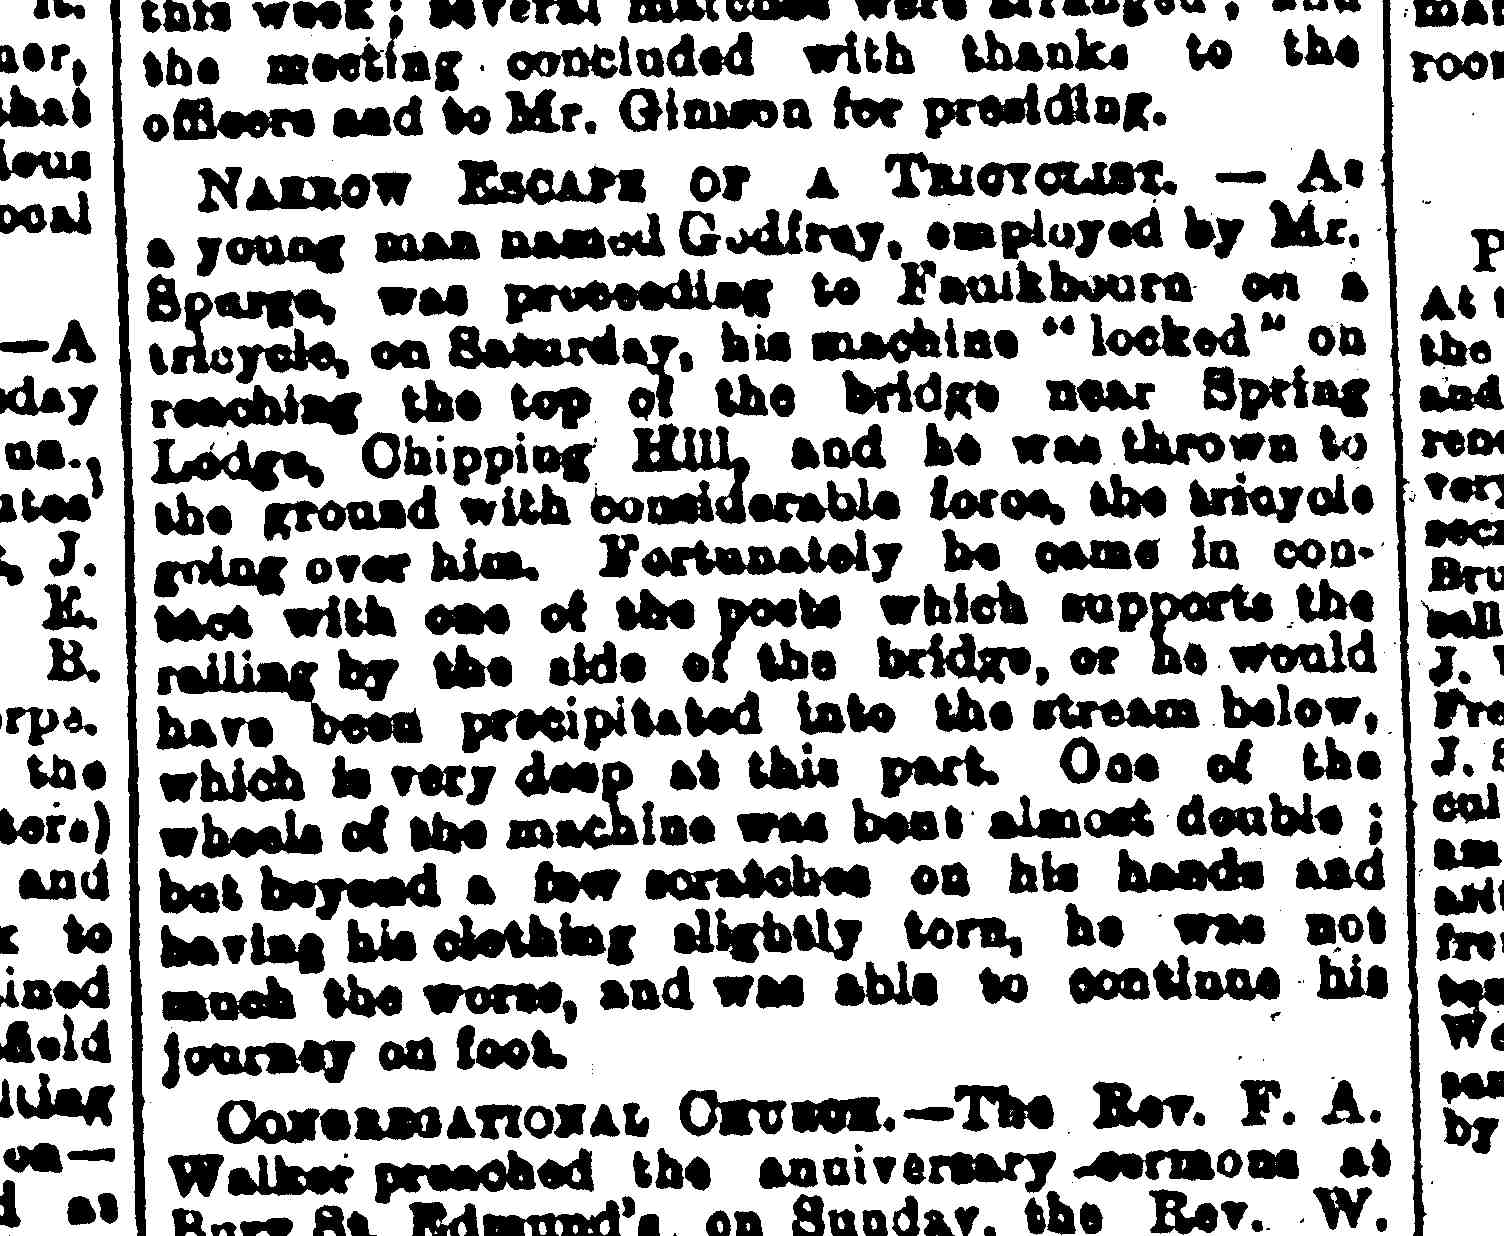 From Essex Weekly News, 14 April 1891